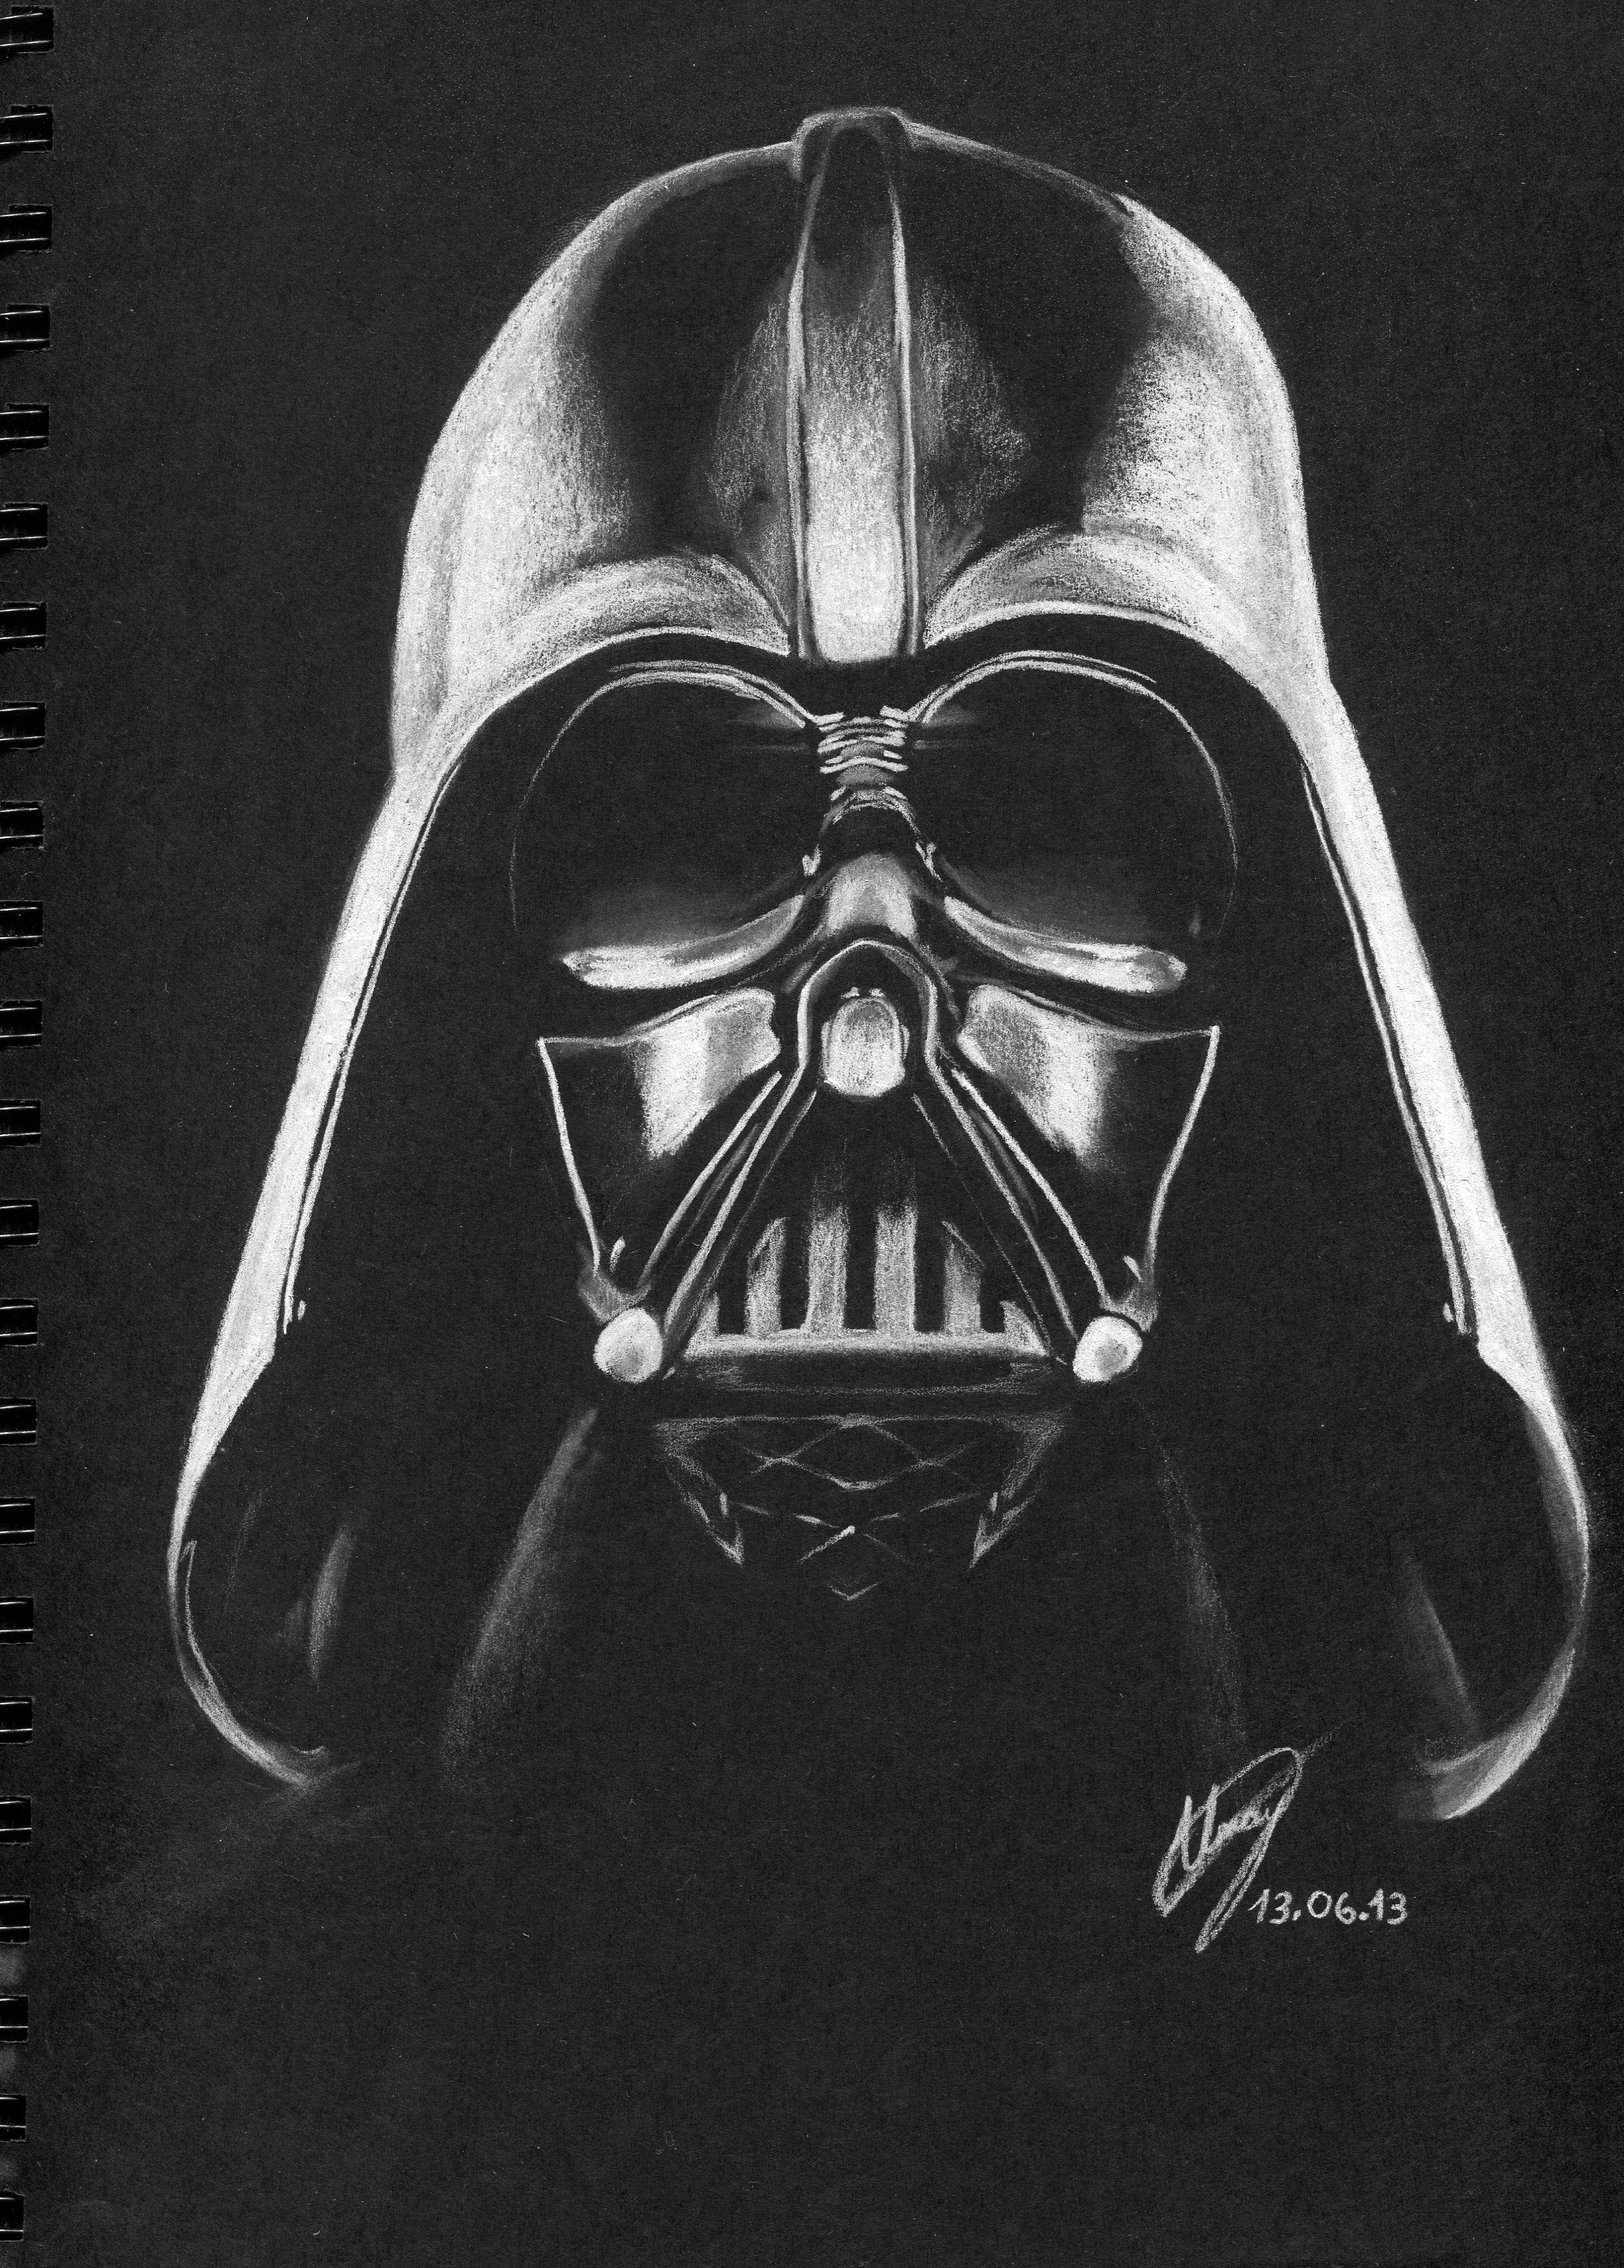 Darth Vader Drawing By Yumyumholmes Deviantart Com On Deviantart